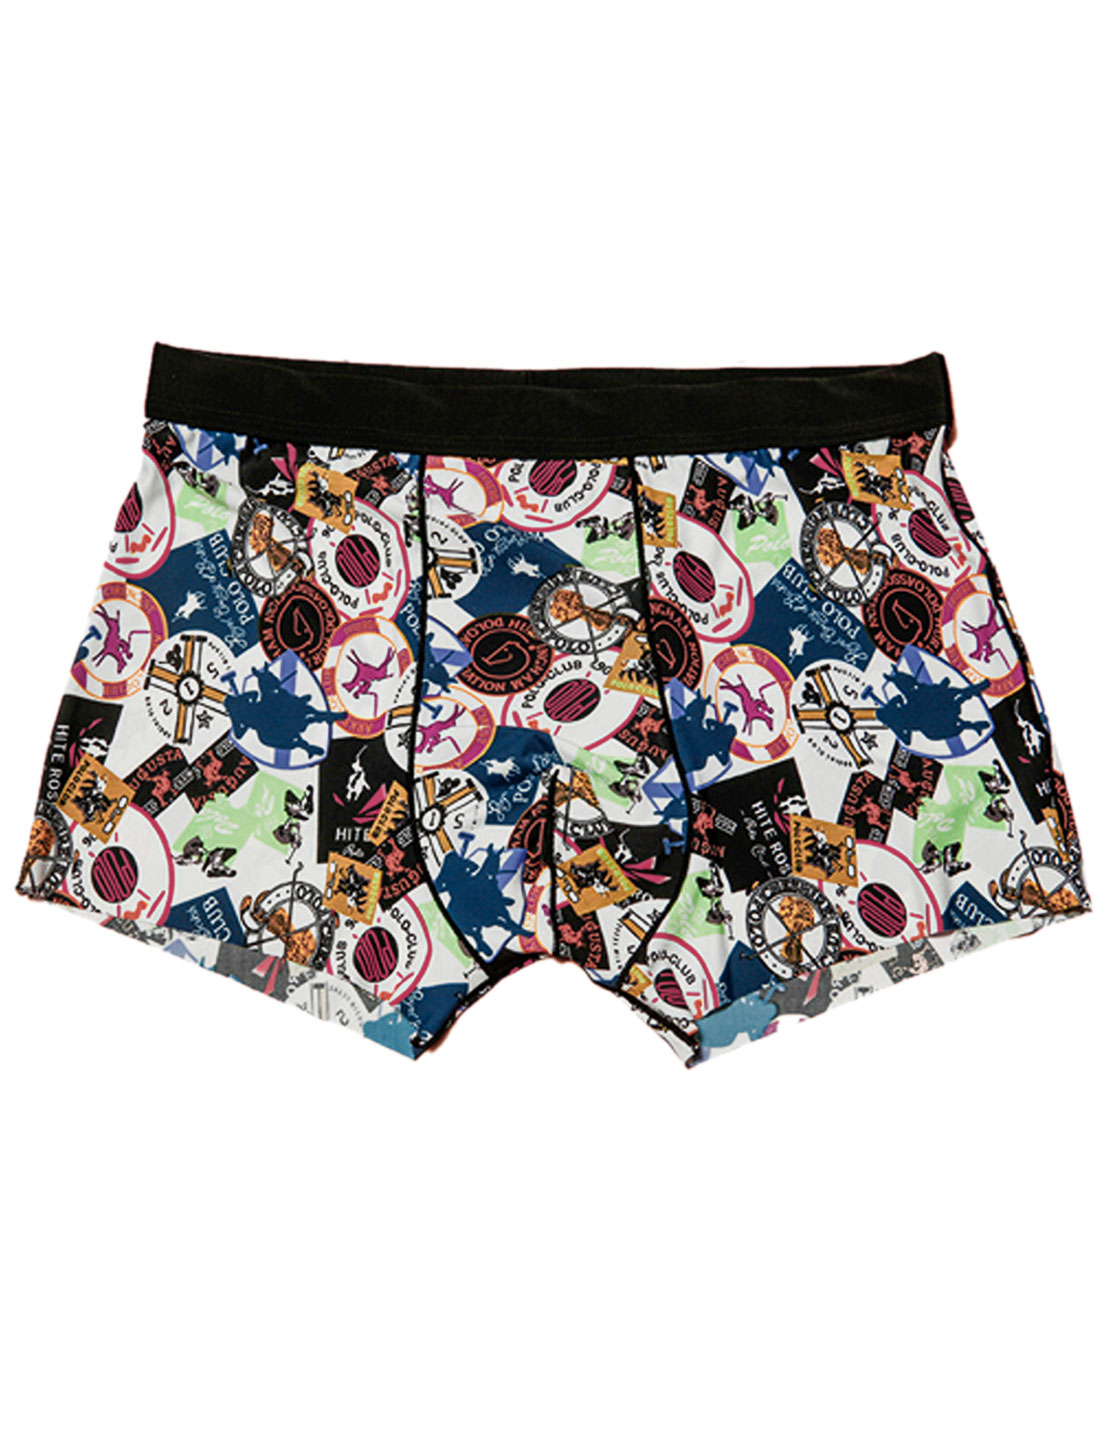 Men Mid Rise Circle Letters Print Ride Horse Pattern Soft Boxer Briefs Multicolor W30